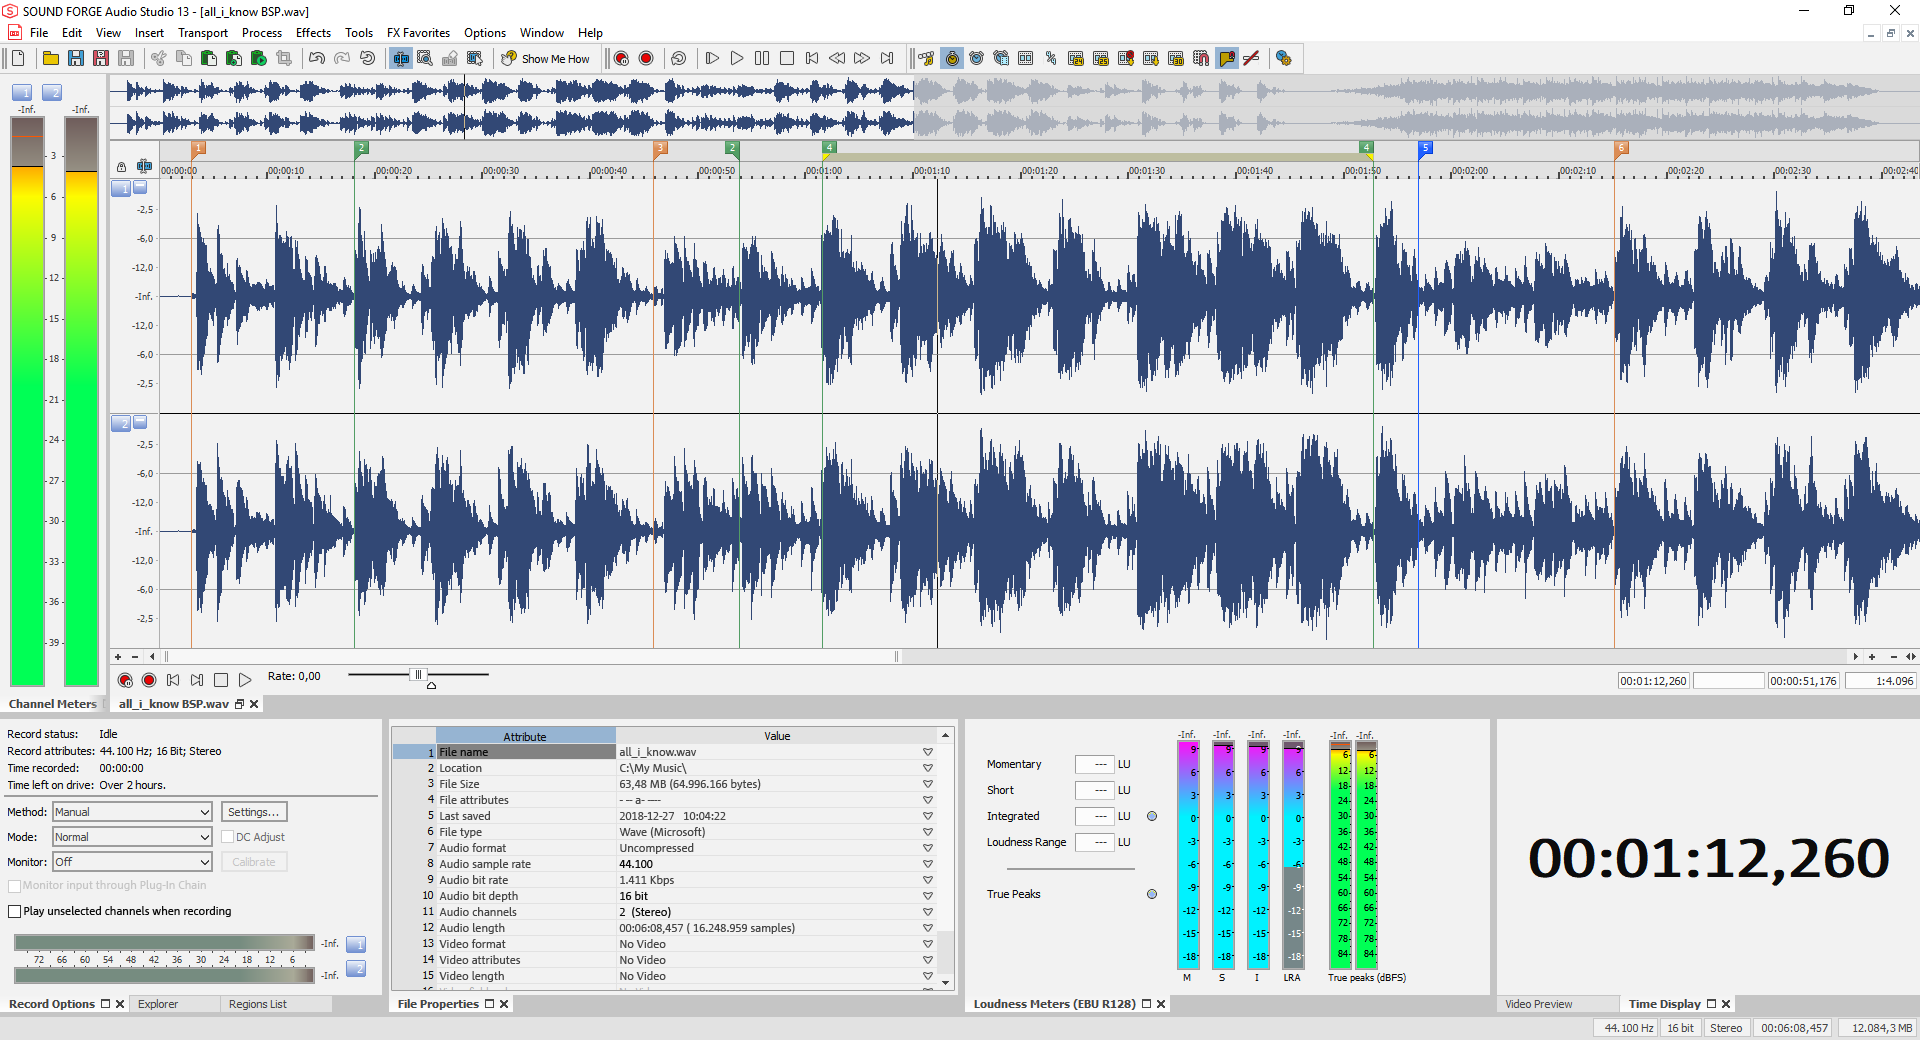 KVR: MAGIX Software releases Sound Forge Audio Studio 13 for